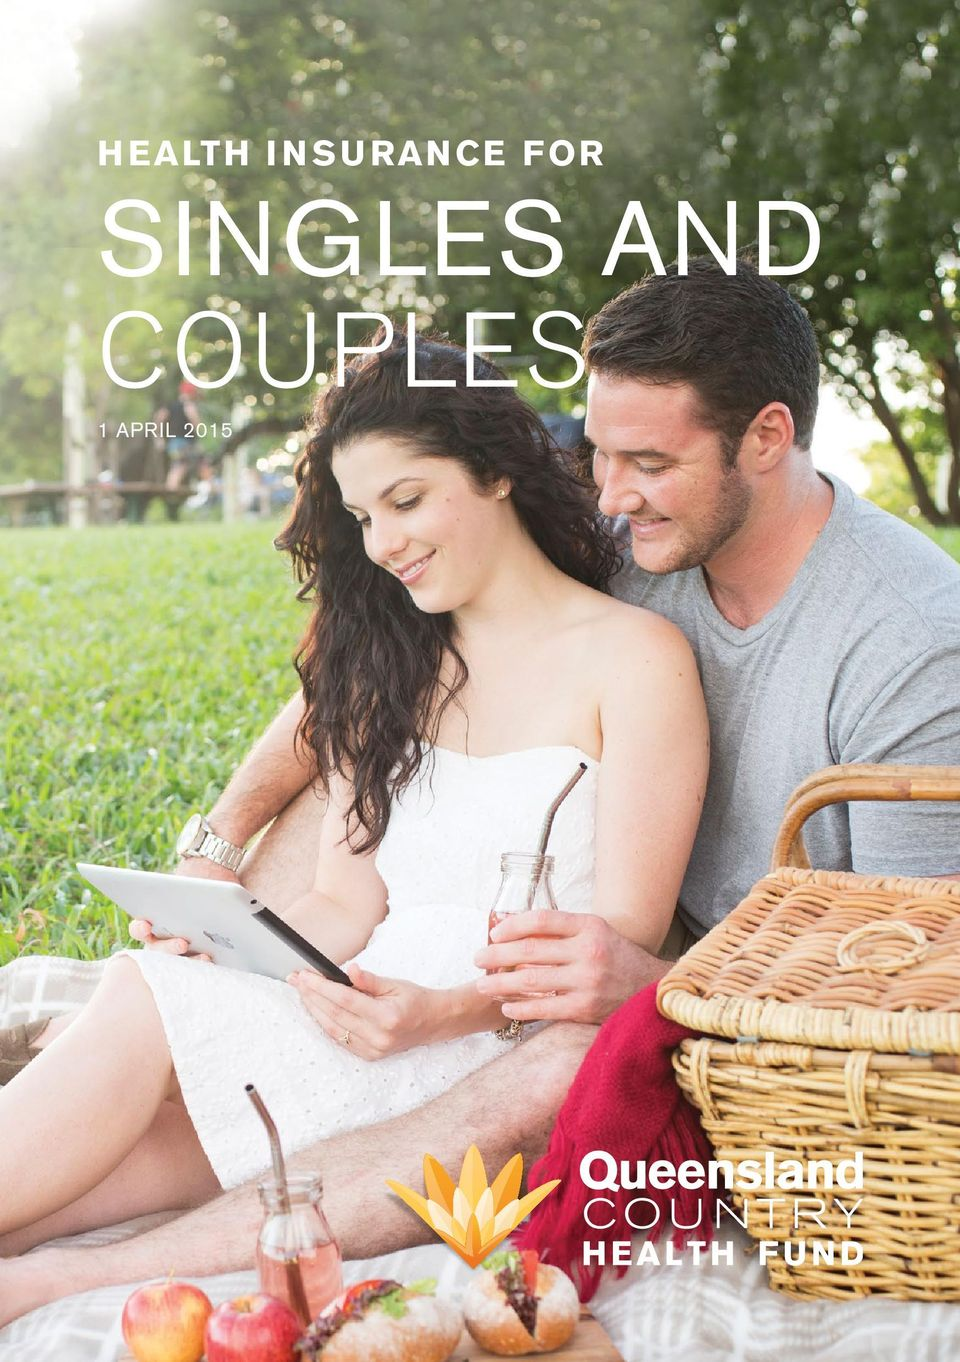 SINGLES AND